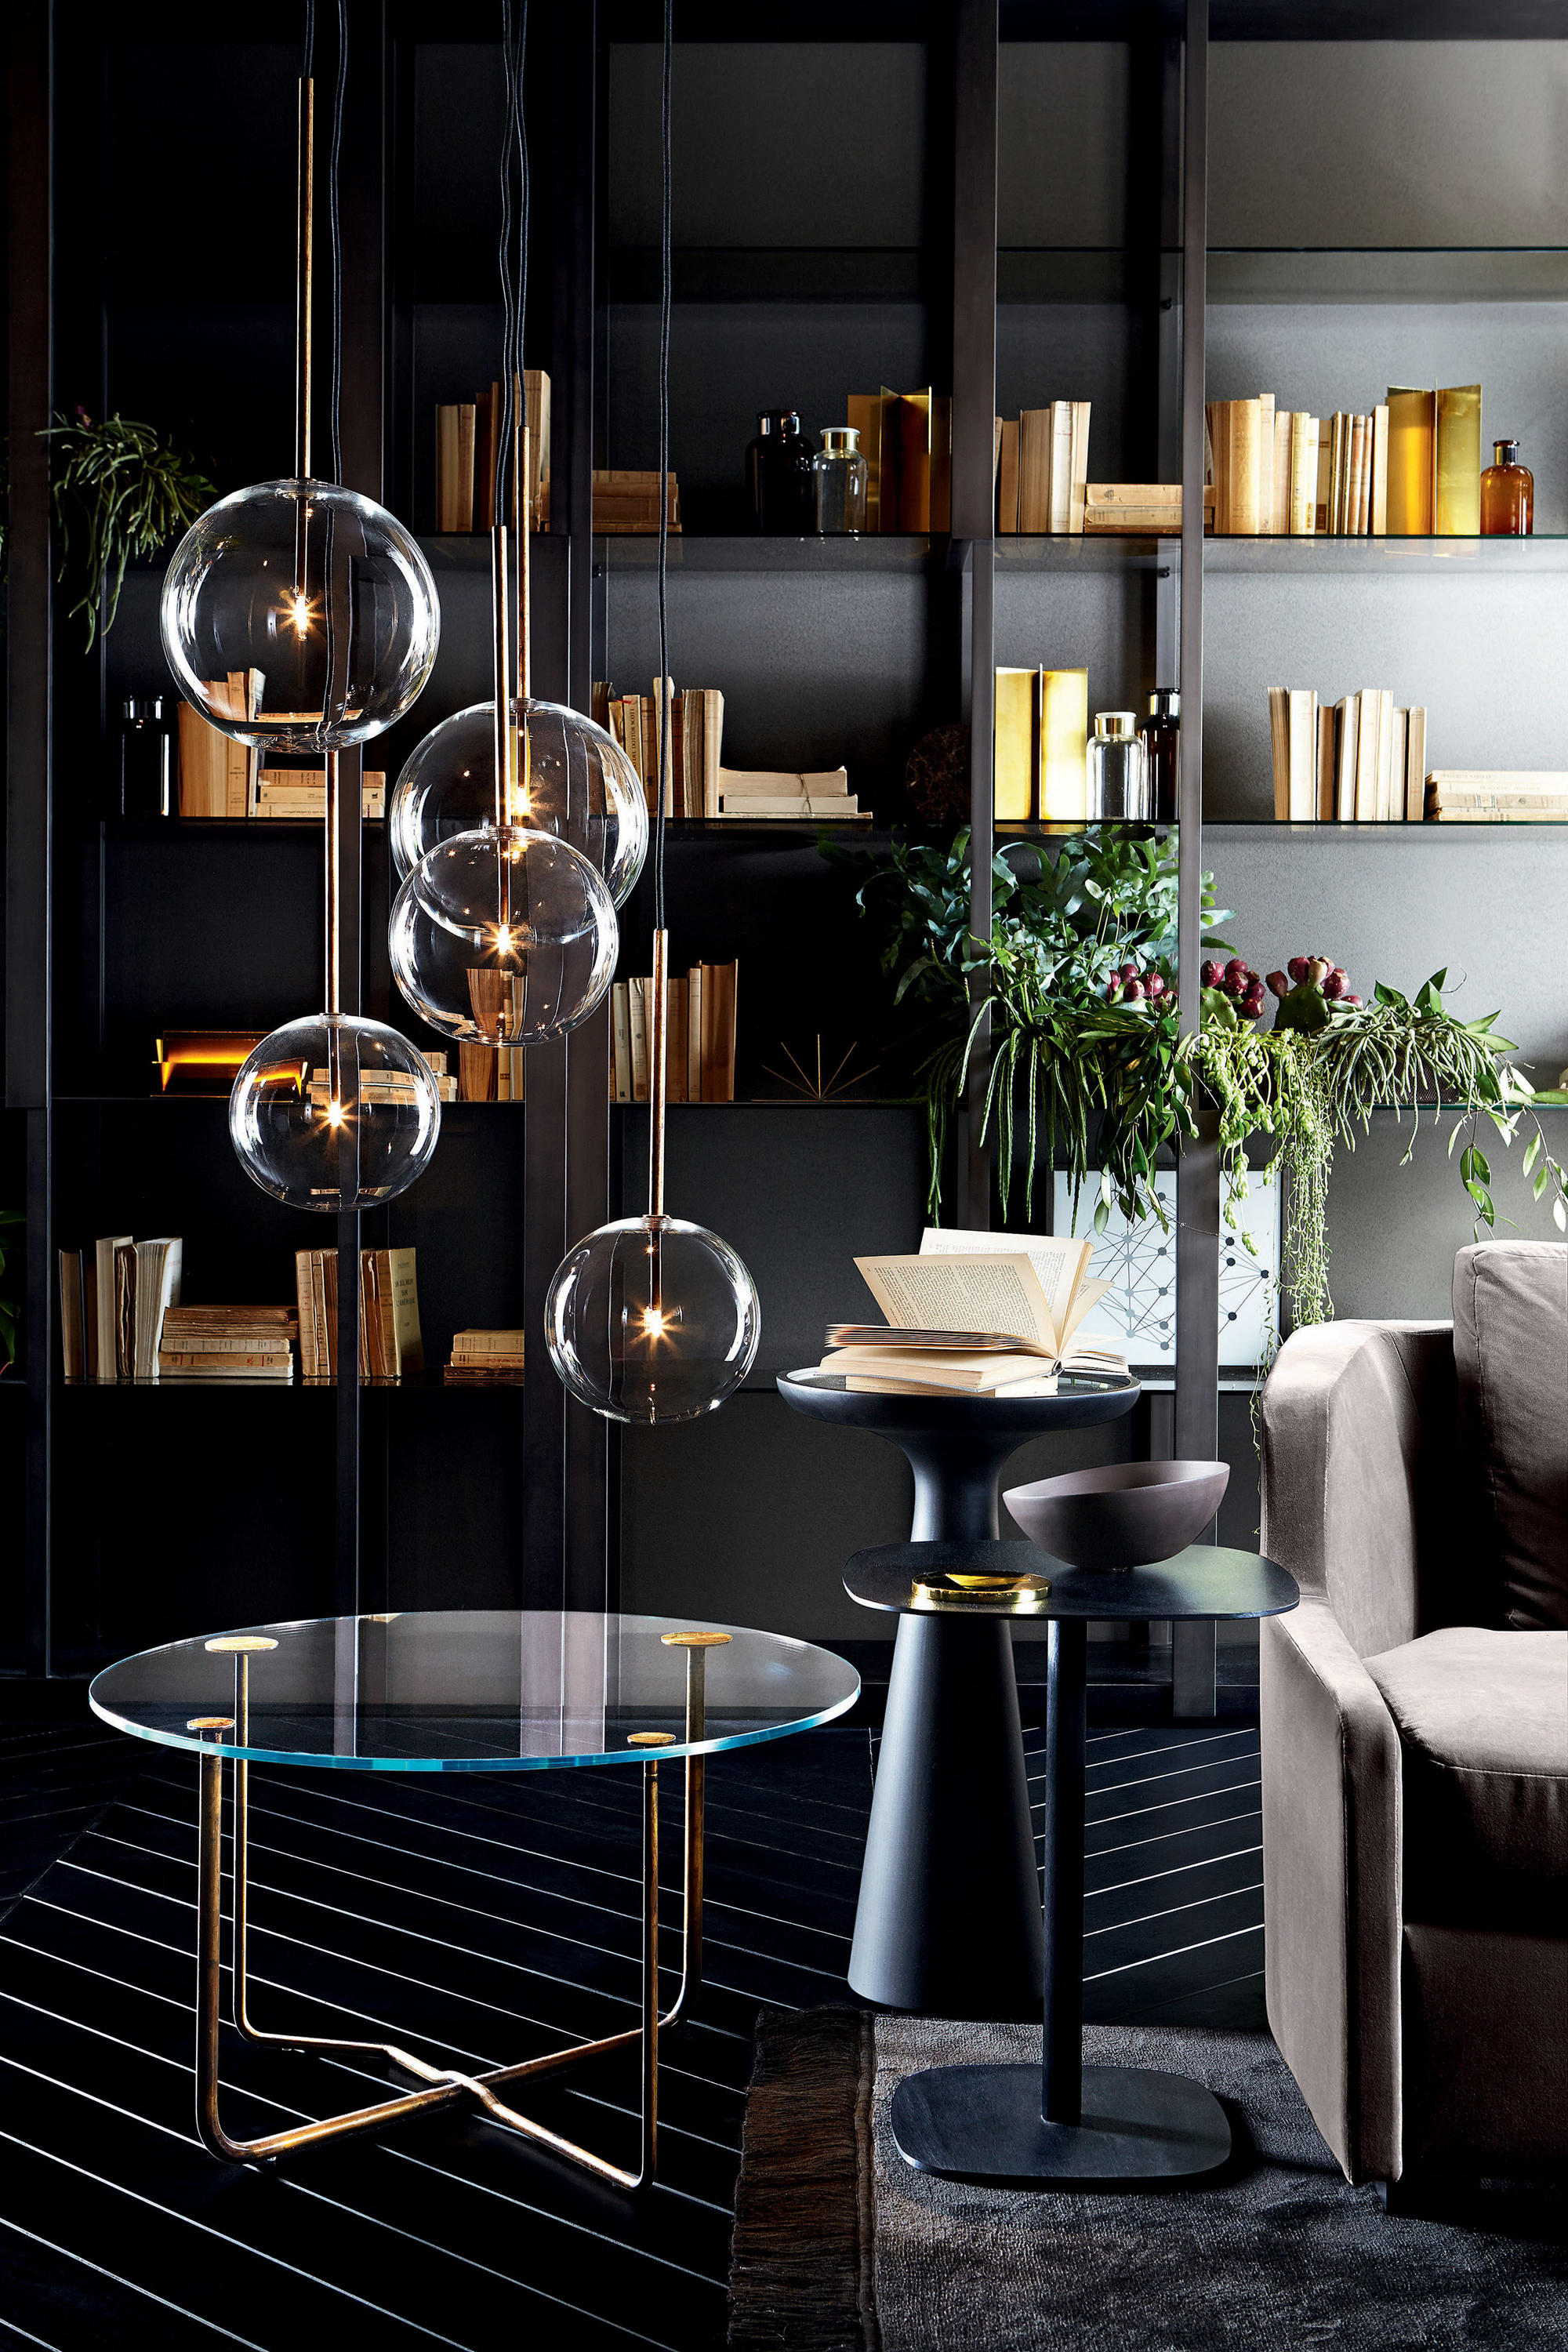 Bolle Sola Suspensions De Gallotti Amp Radice Architonic